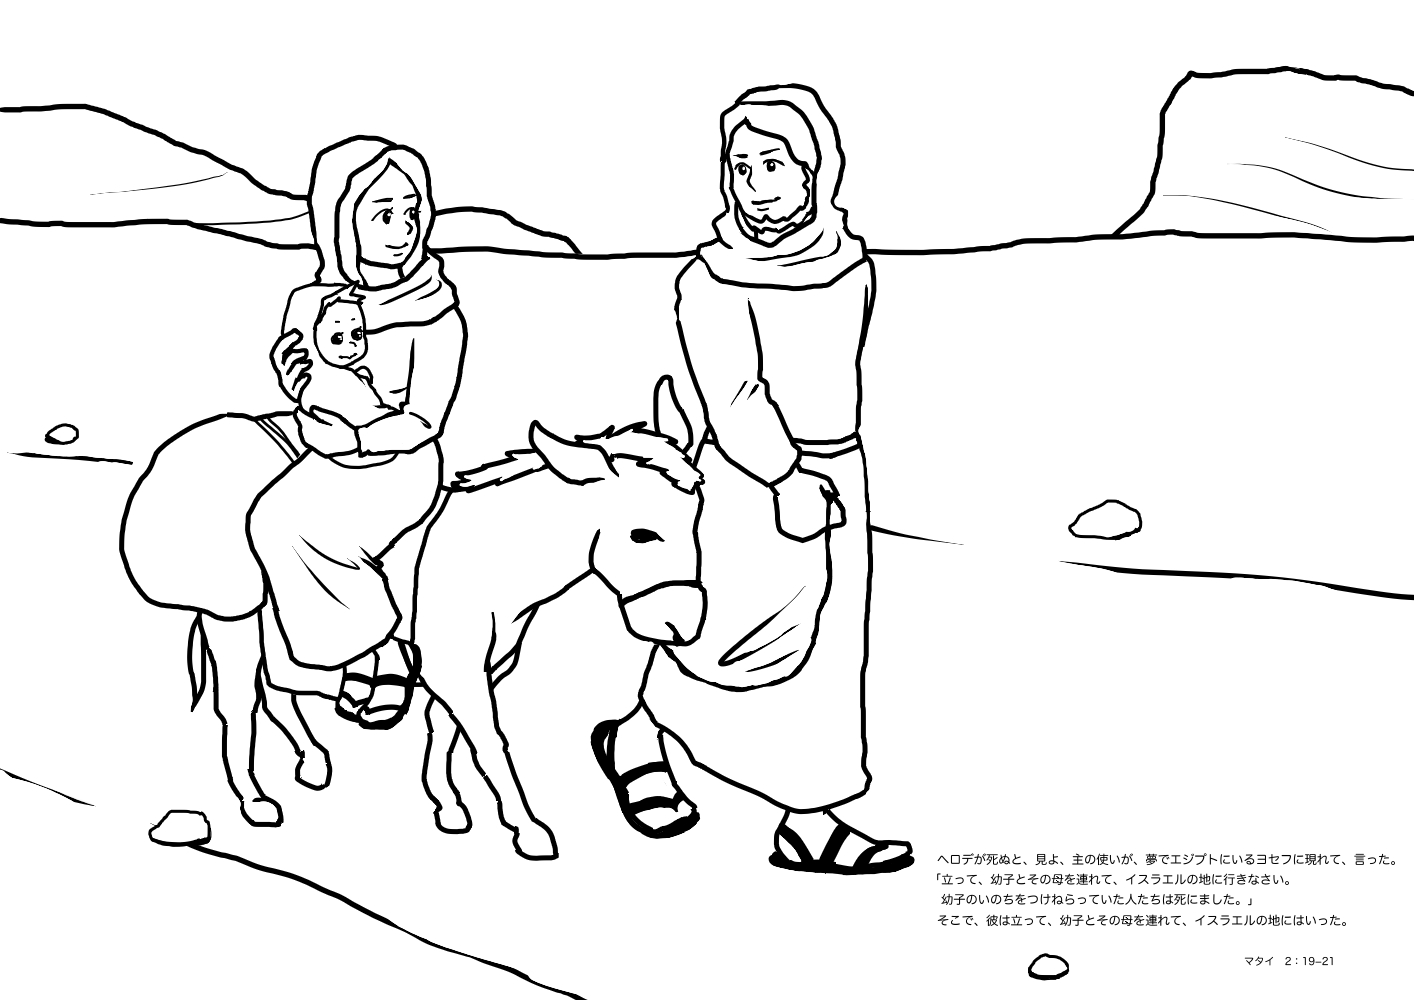 return of jesus coloring pages - photo#8